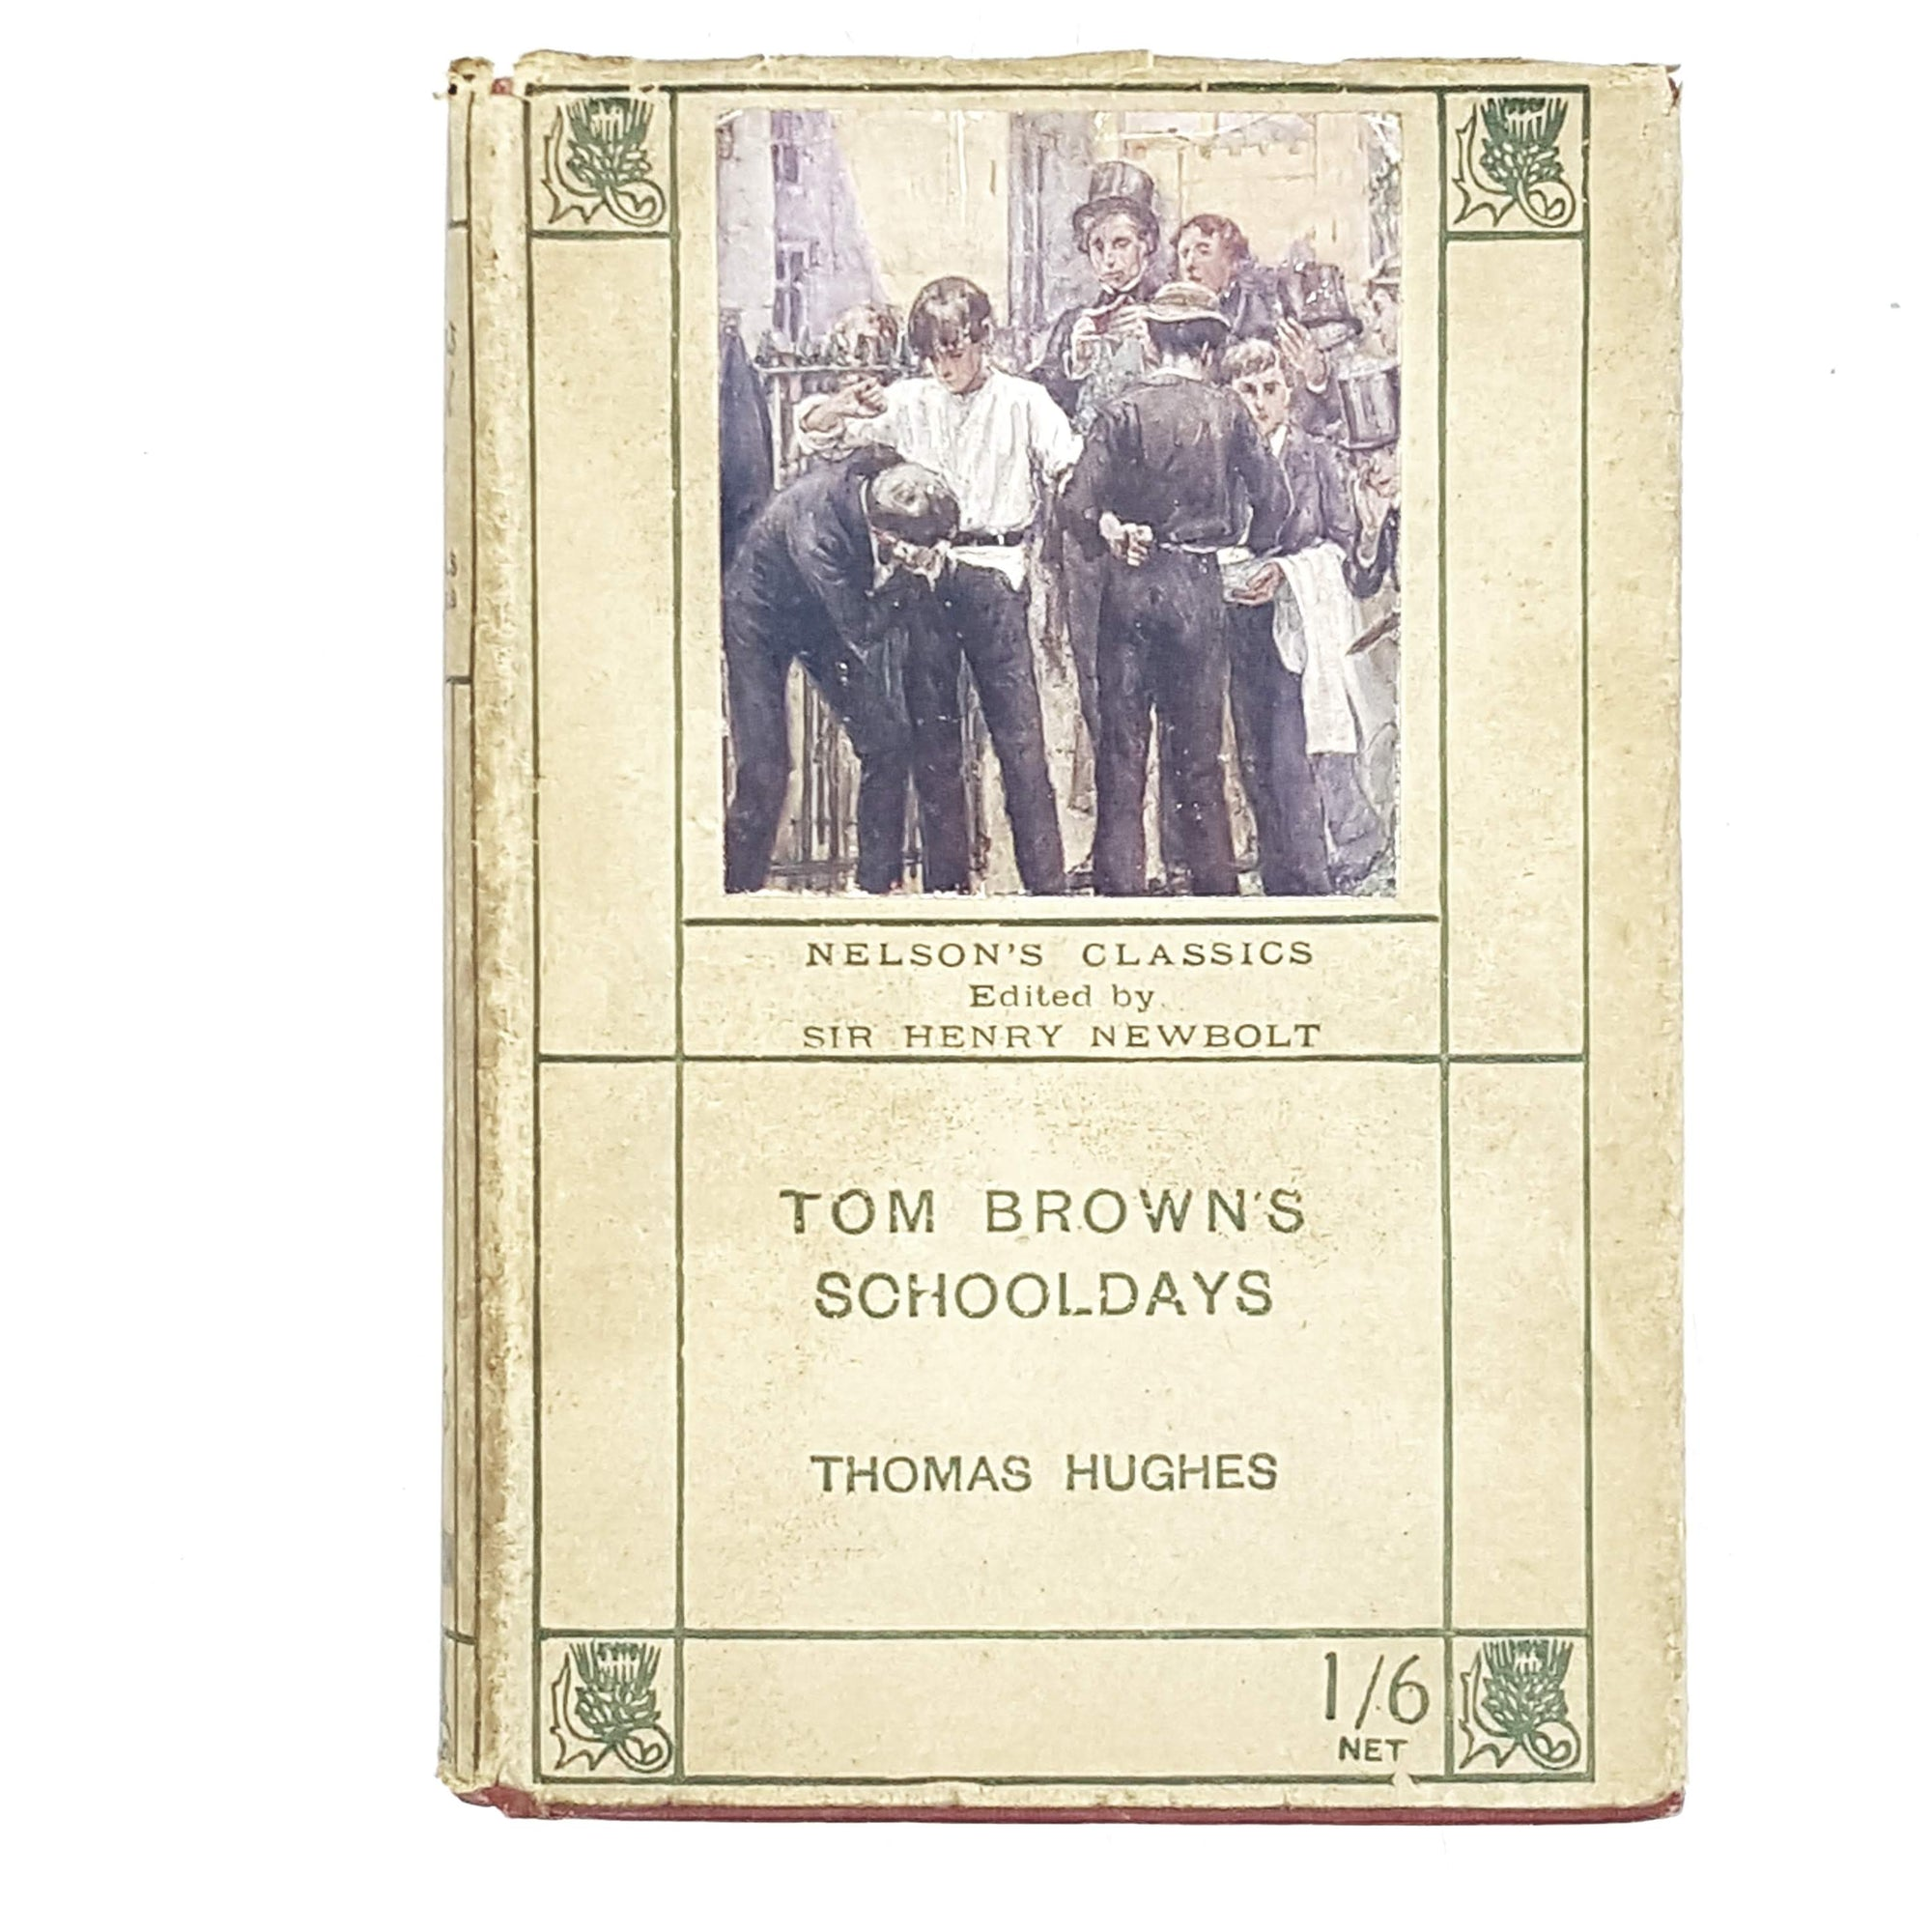 Thomas Hughes's Tom Brown's School Days